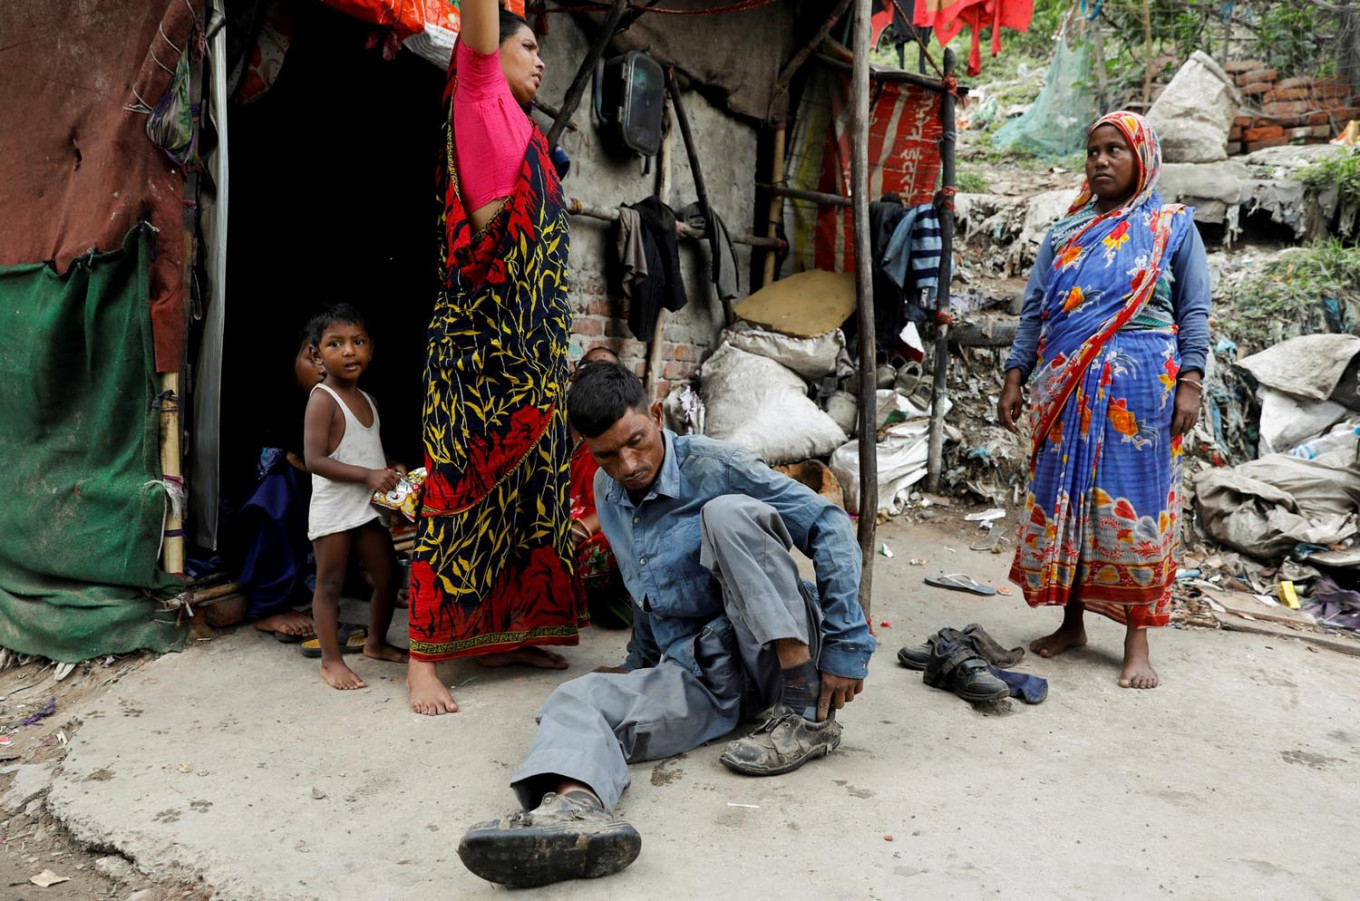 Mansoor Khan, 44, who works as a waste collector, puts on his shoes as he gets ready to look for recyclable materials from a landfill site next to his house, during the coronavirus disease (COVID-19) outbreak, in New Delhi, India, July 16, 2020. Reuters/Adnan Abidi